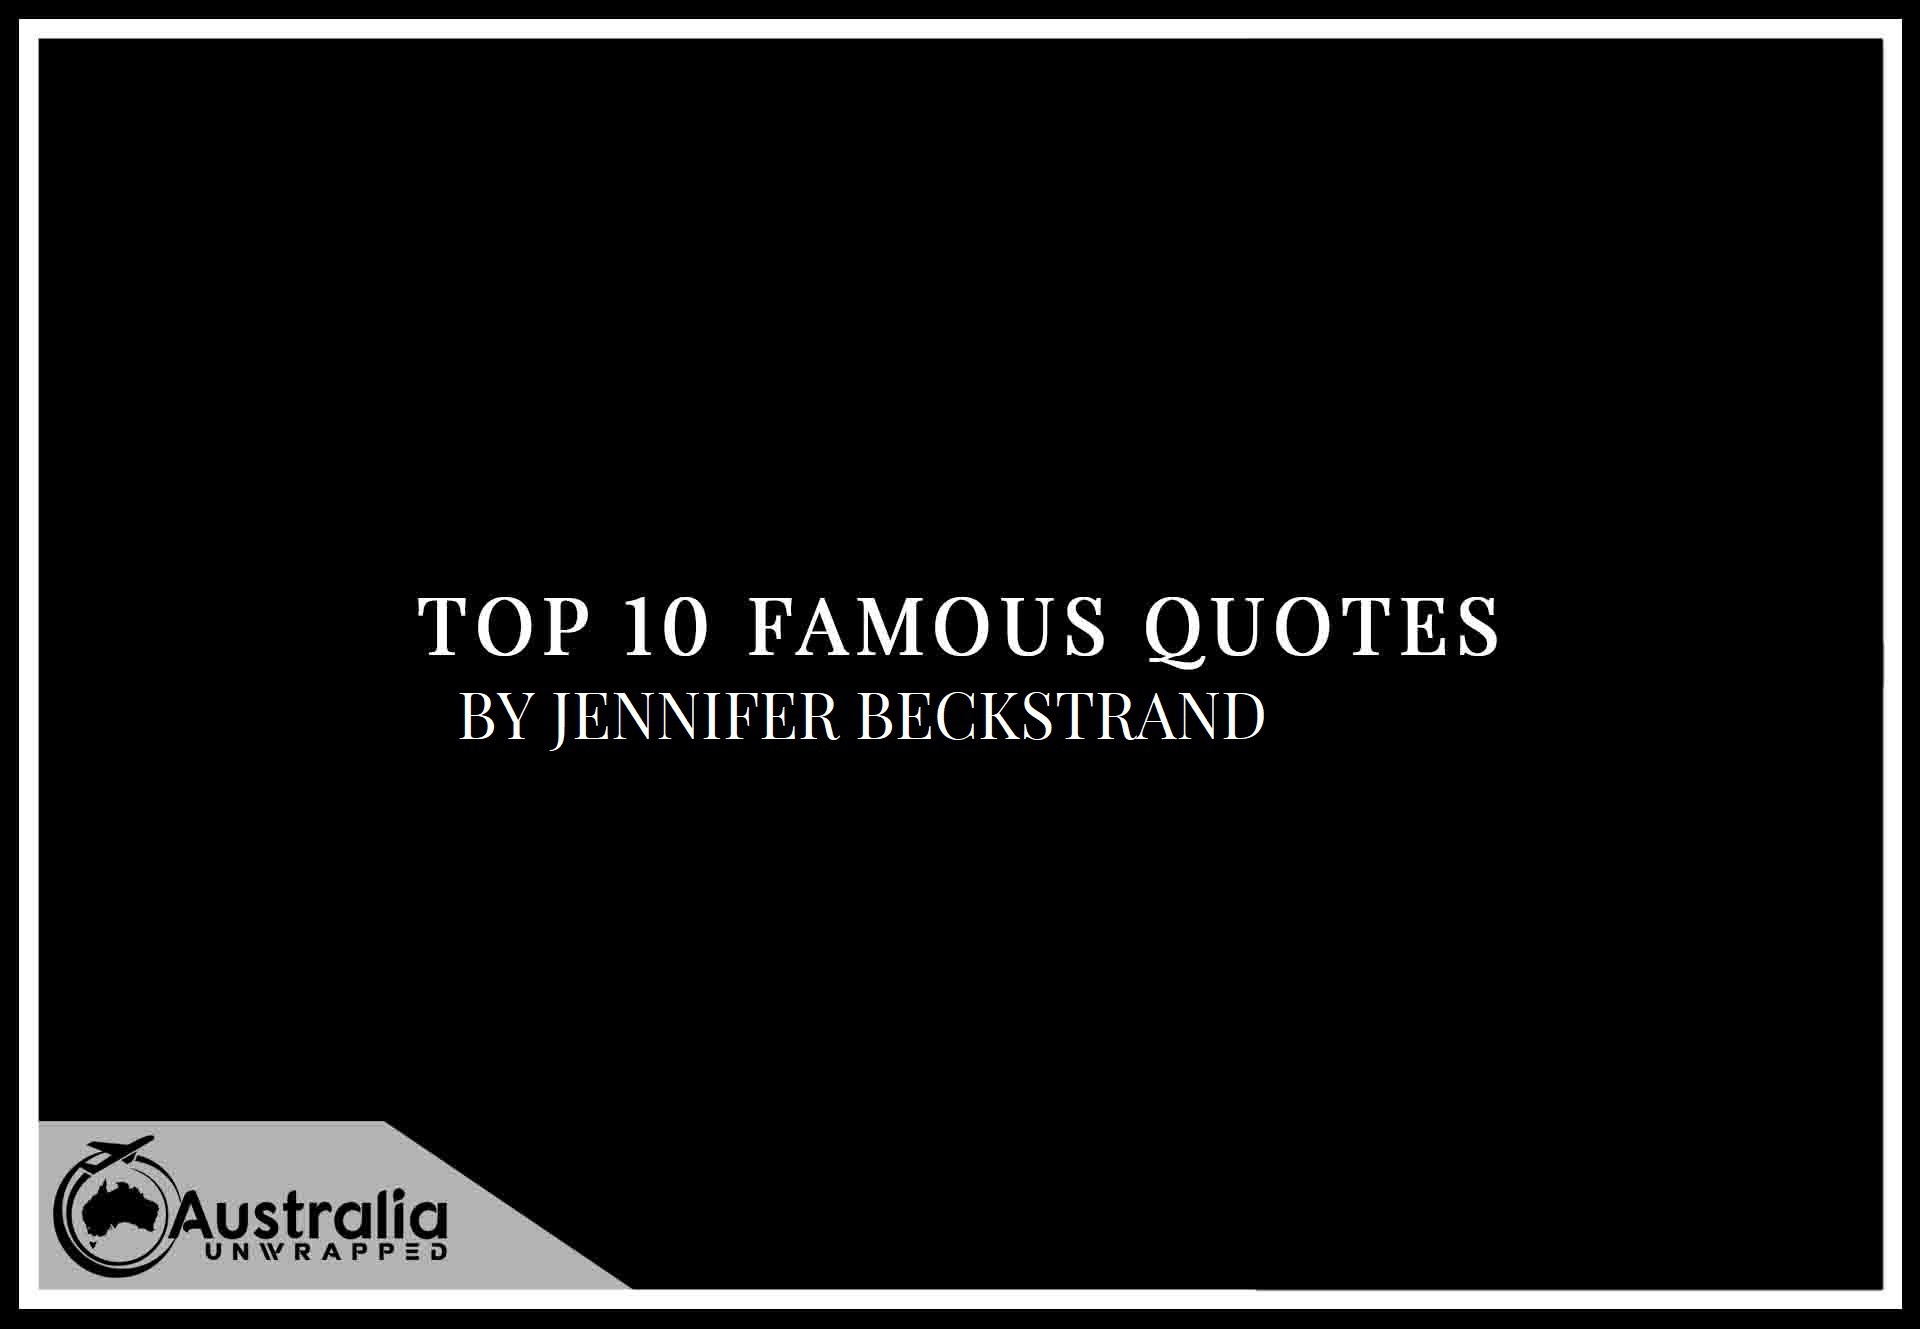 Top 10 Famous Quotes by Author Jennifer Beckstrand